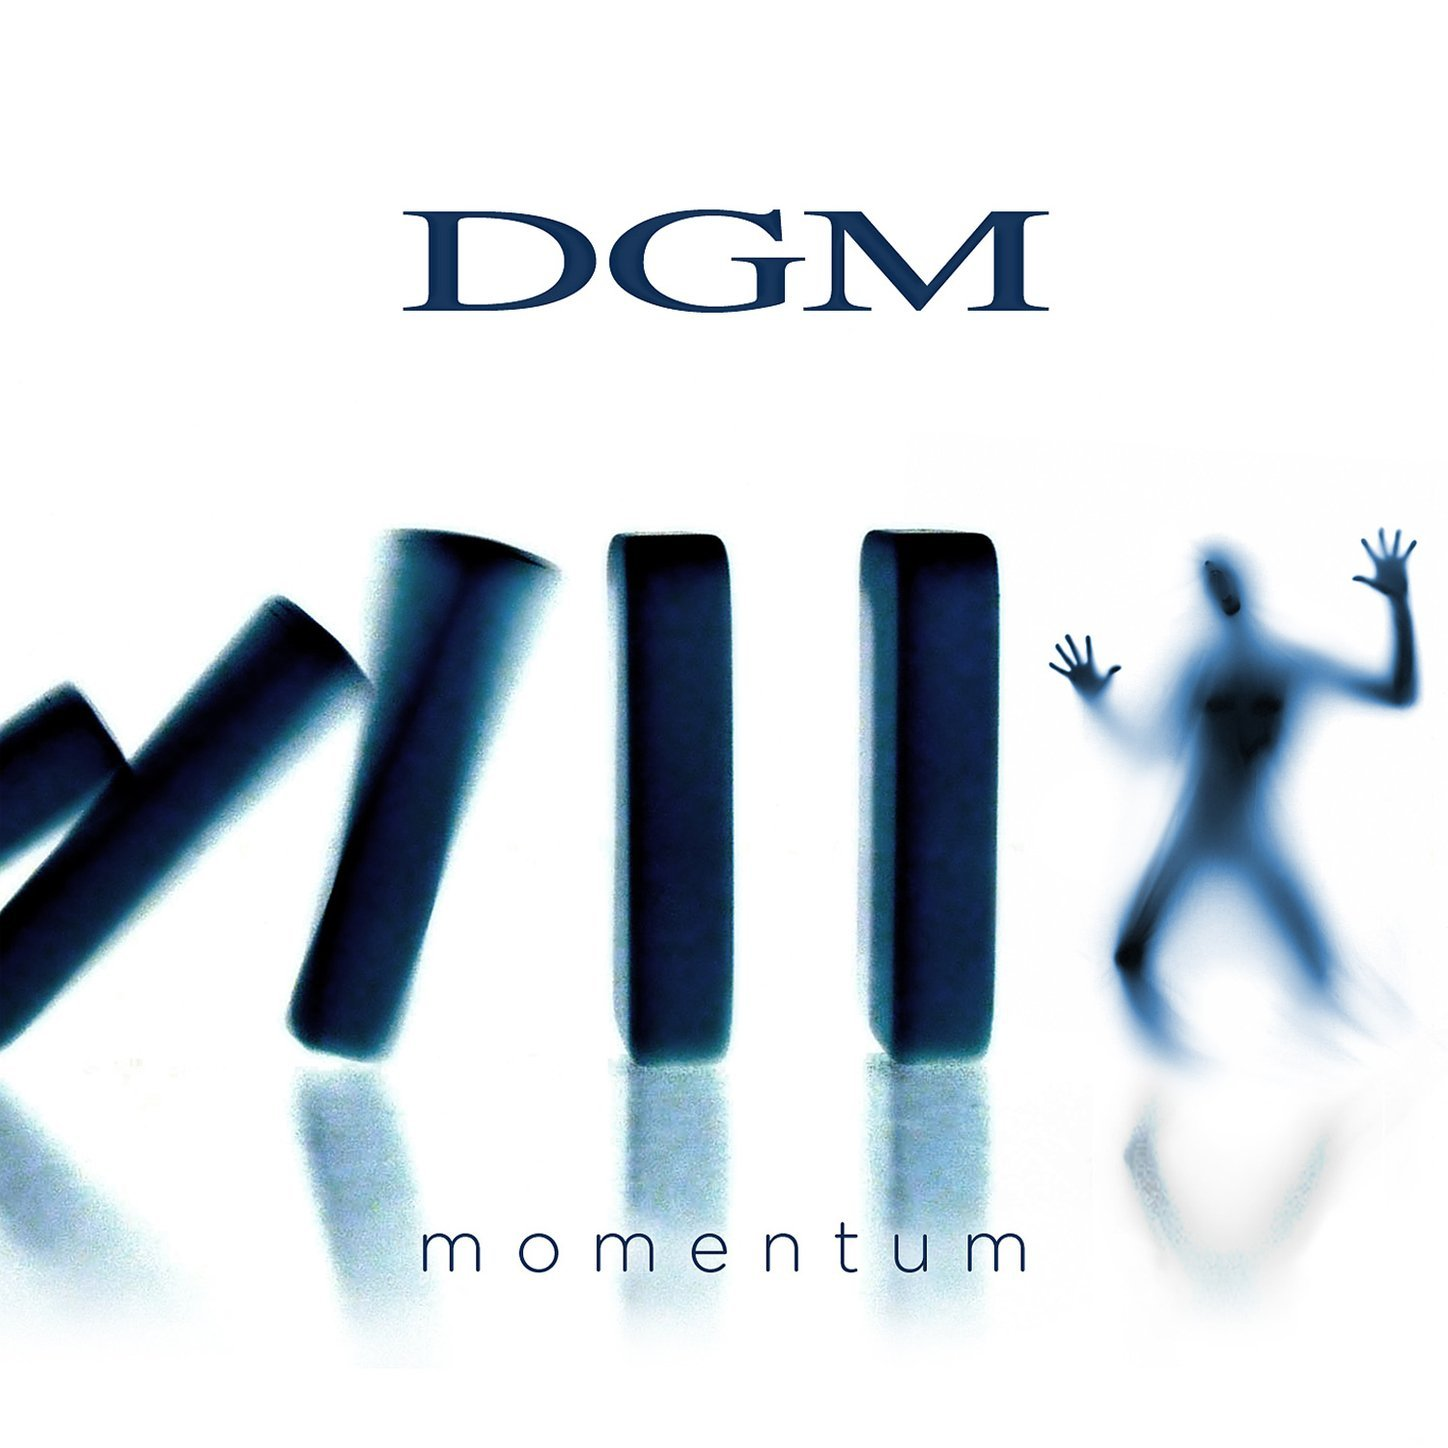 DGM - Momentum (2013) mp3 download